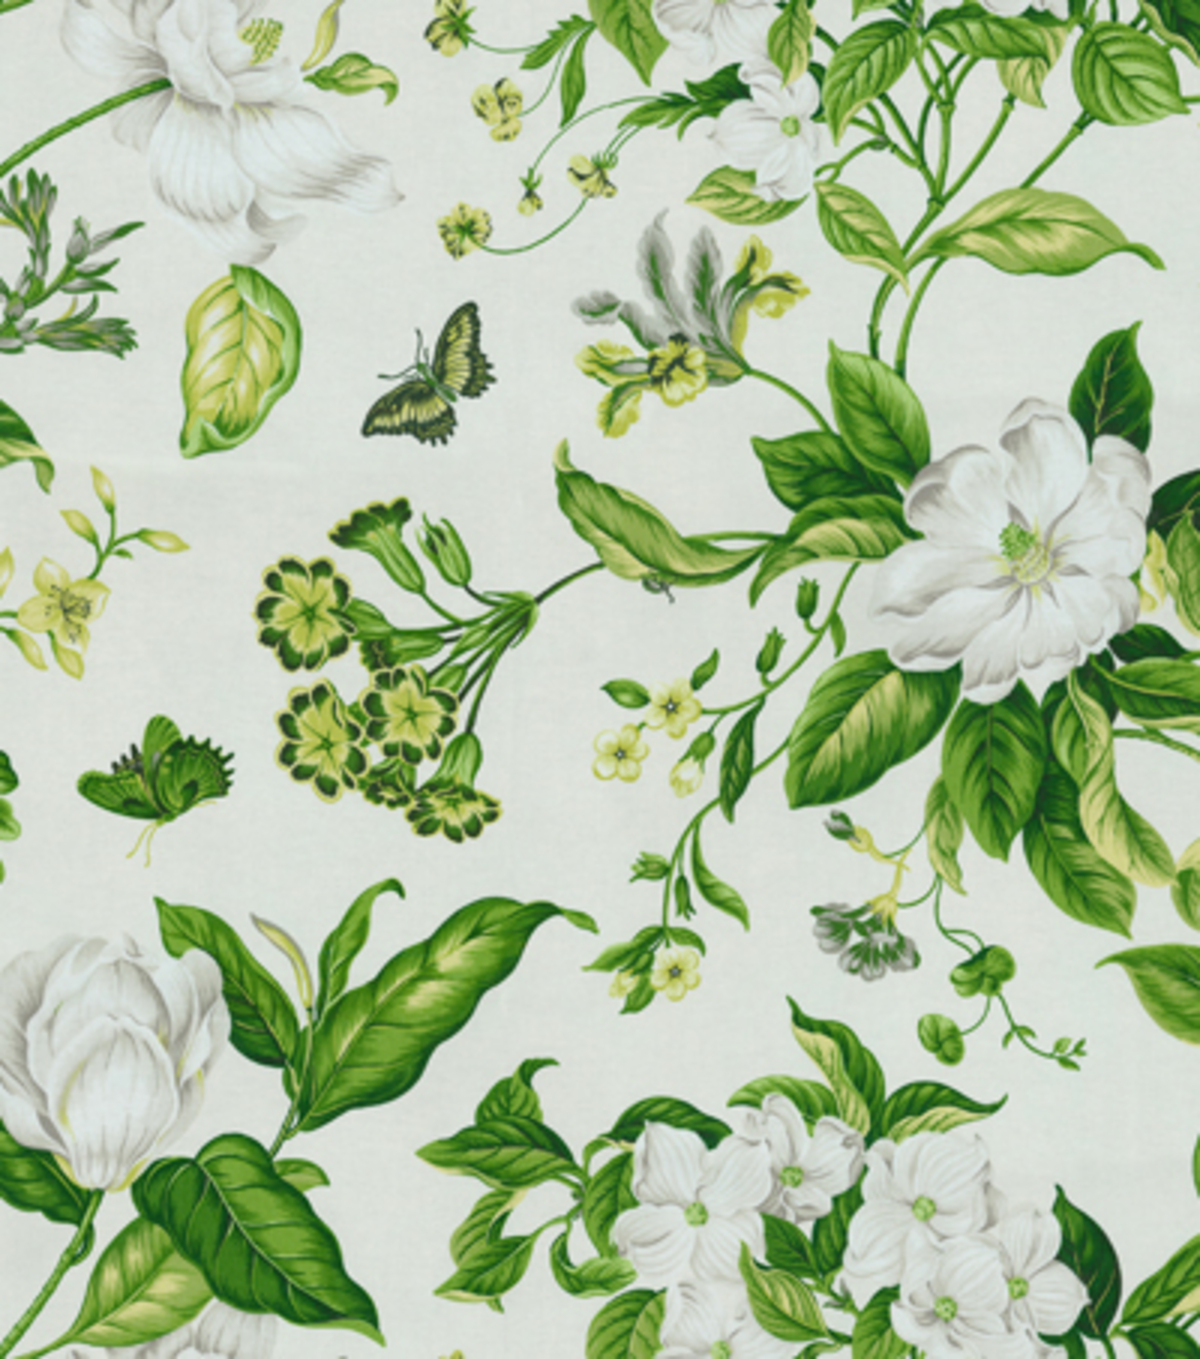 Exceptional Williamsburg Lightweight Decor Fabric Garden Images Clover